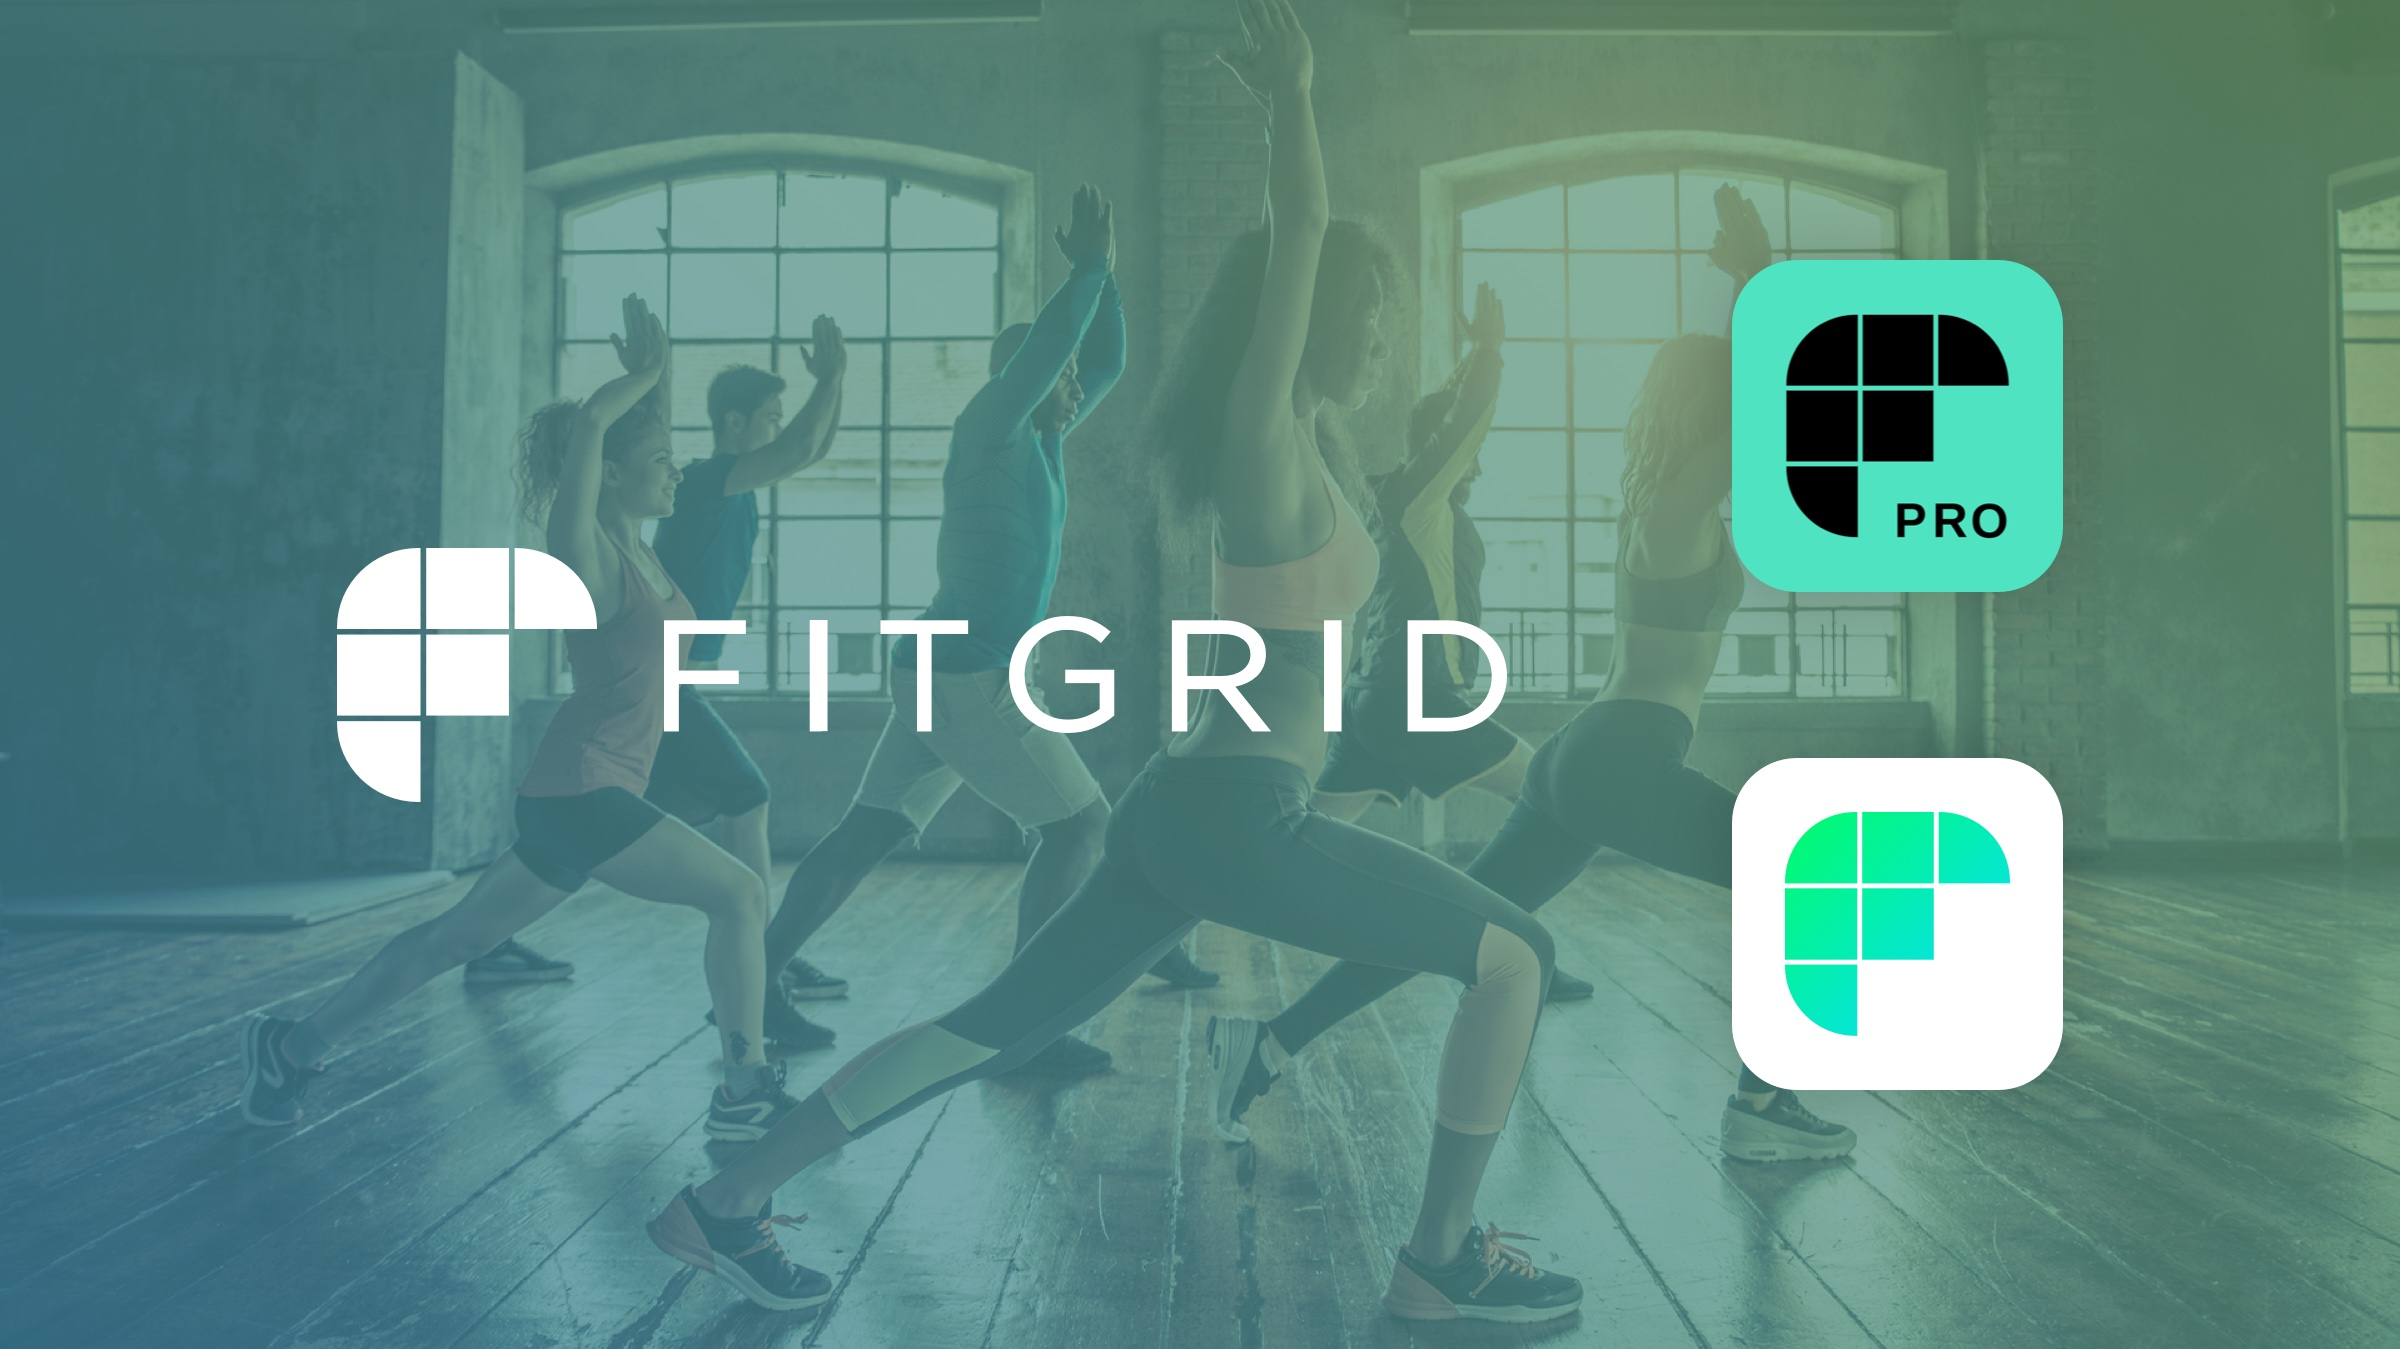 A fitness platform helps businesses to connect with trainers and trainees.